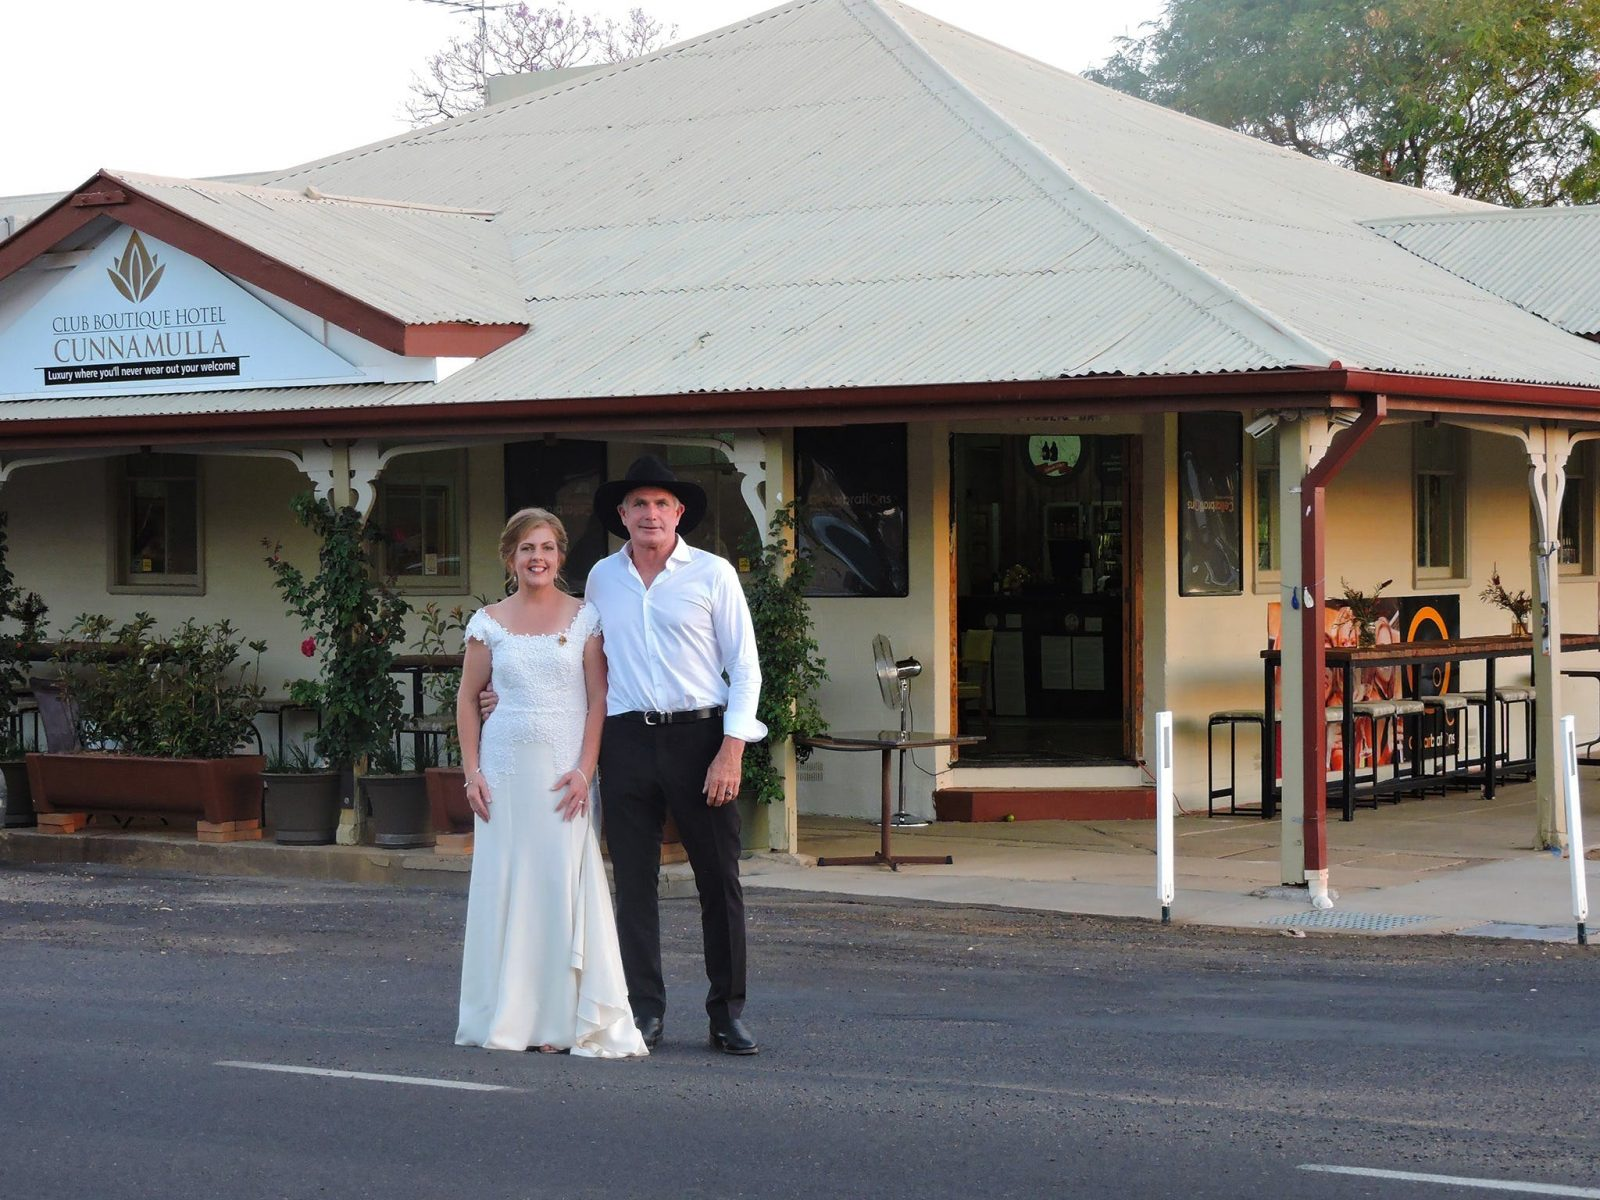 Club Boutique Hotel Cunnamulla accommodation entertainment restaurant bar events and functions more